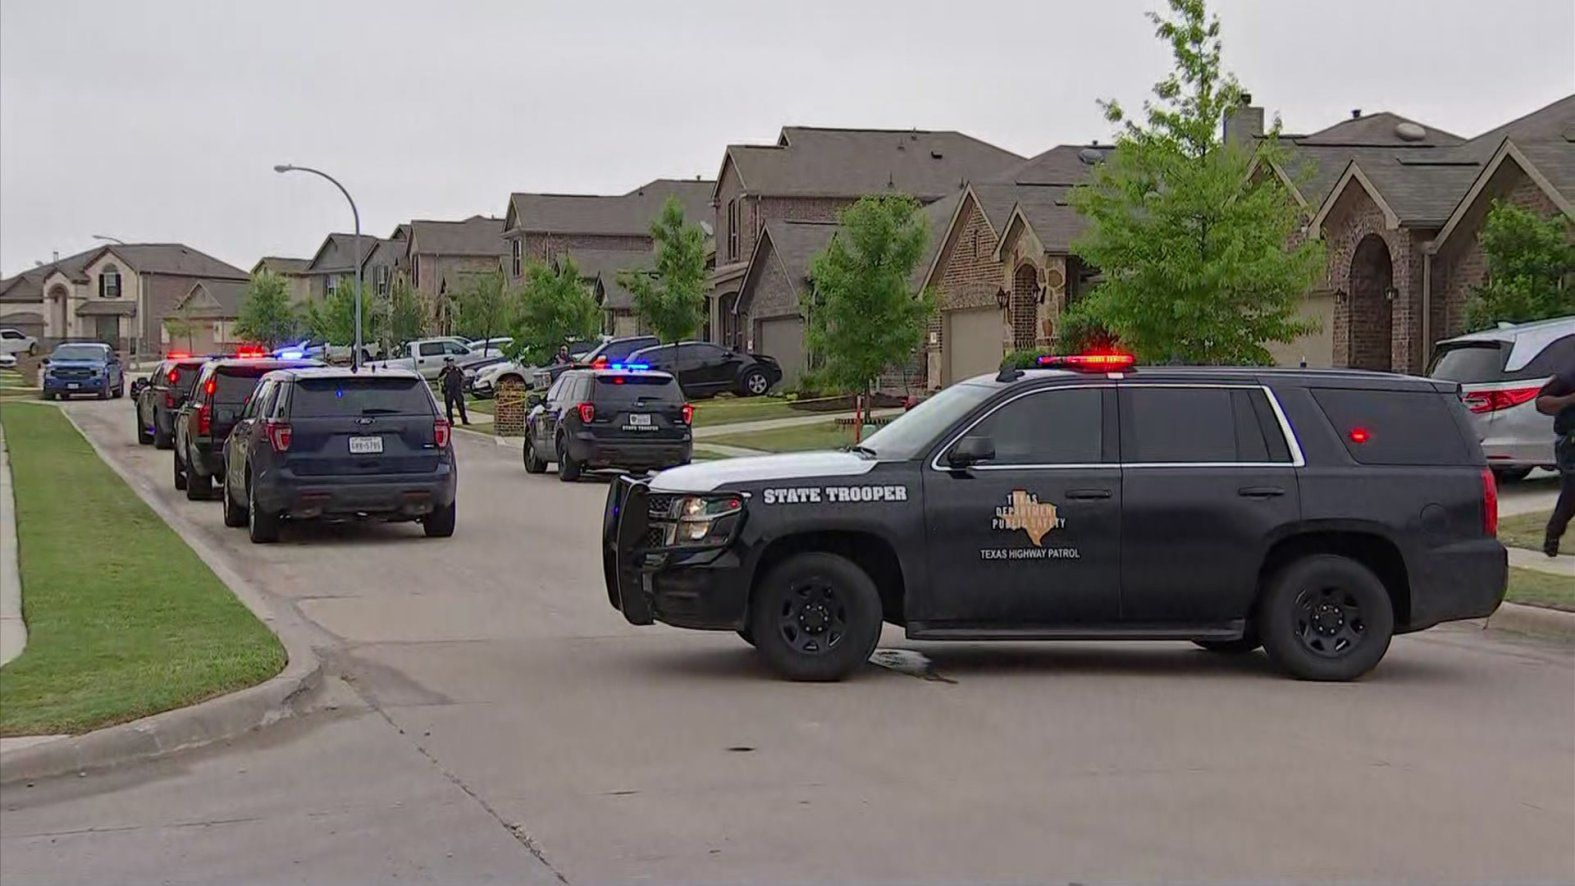 A Department of Public Safety trooper was hospitalized with serious injuries Friday afternoon.